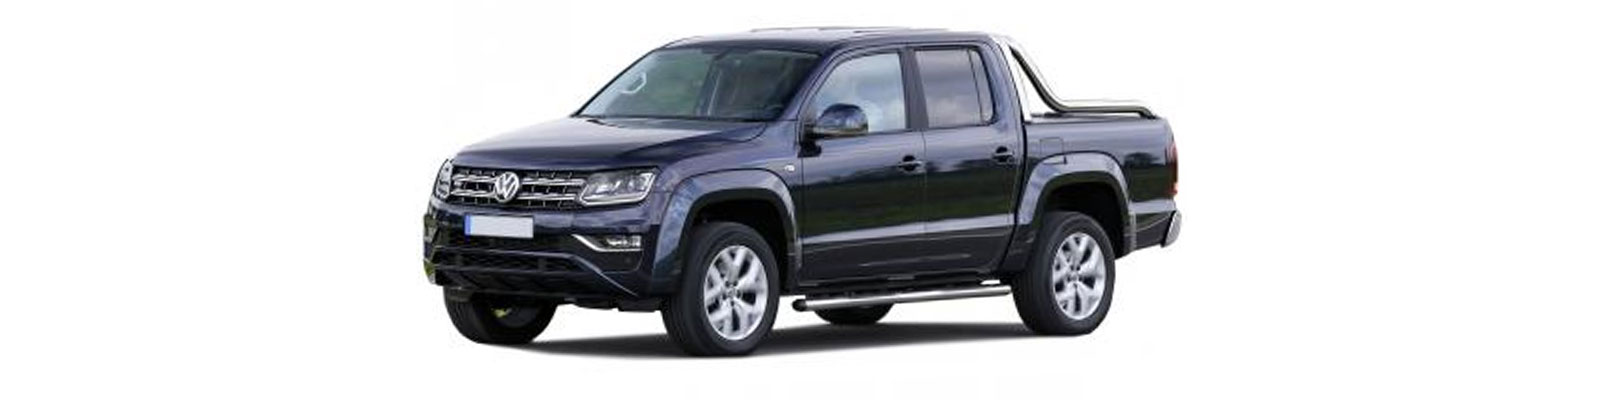 Accessories For VW Amarok 2017 Onwards